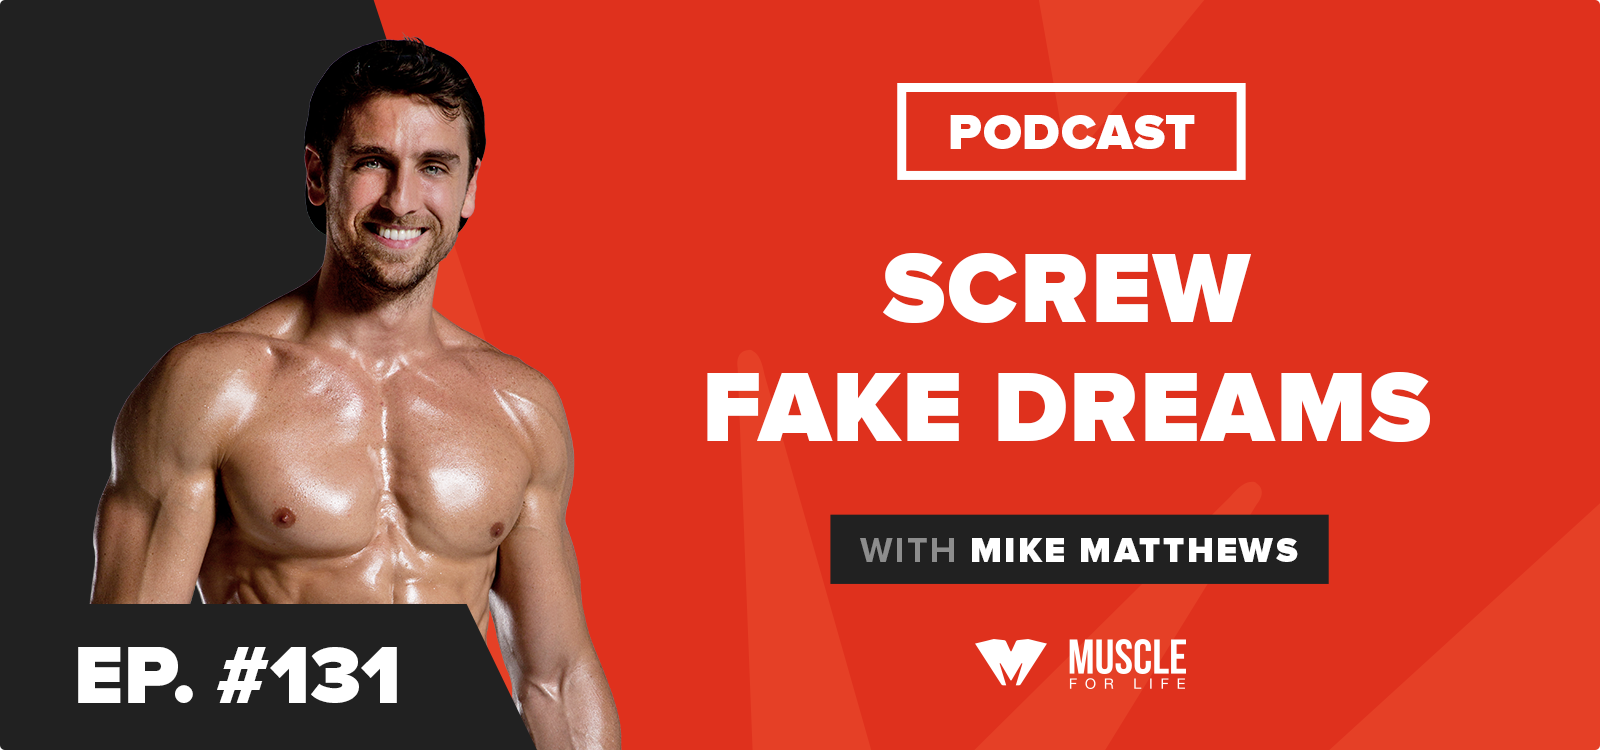 Motivation Monday: Screw Fake Dreams